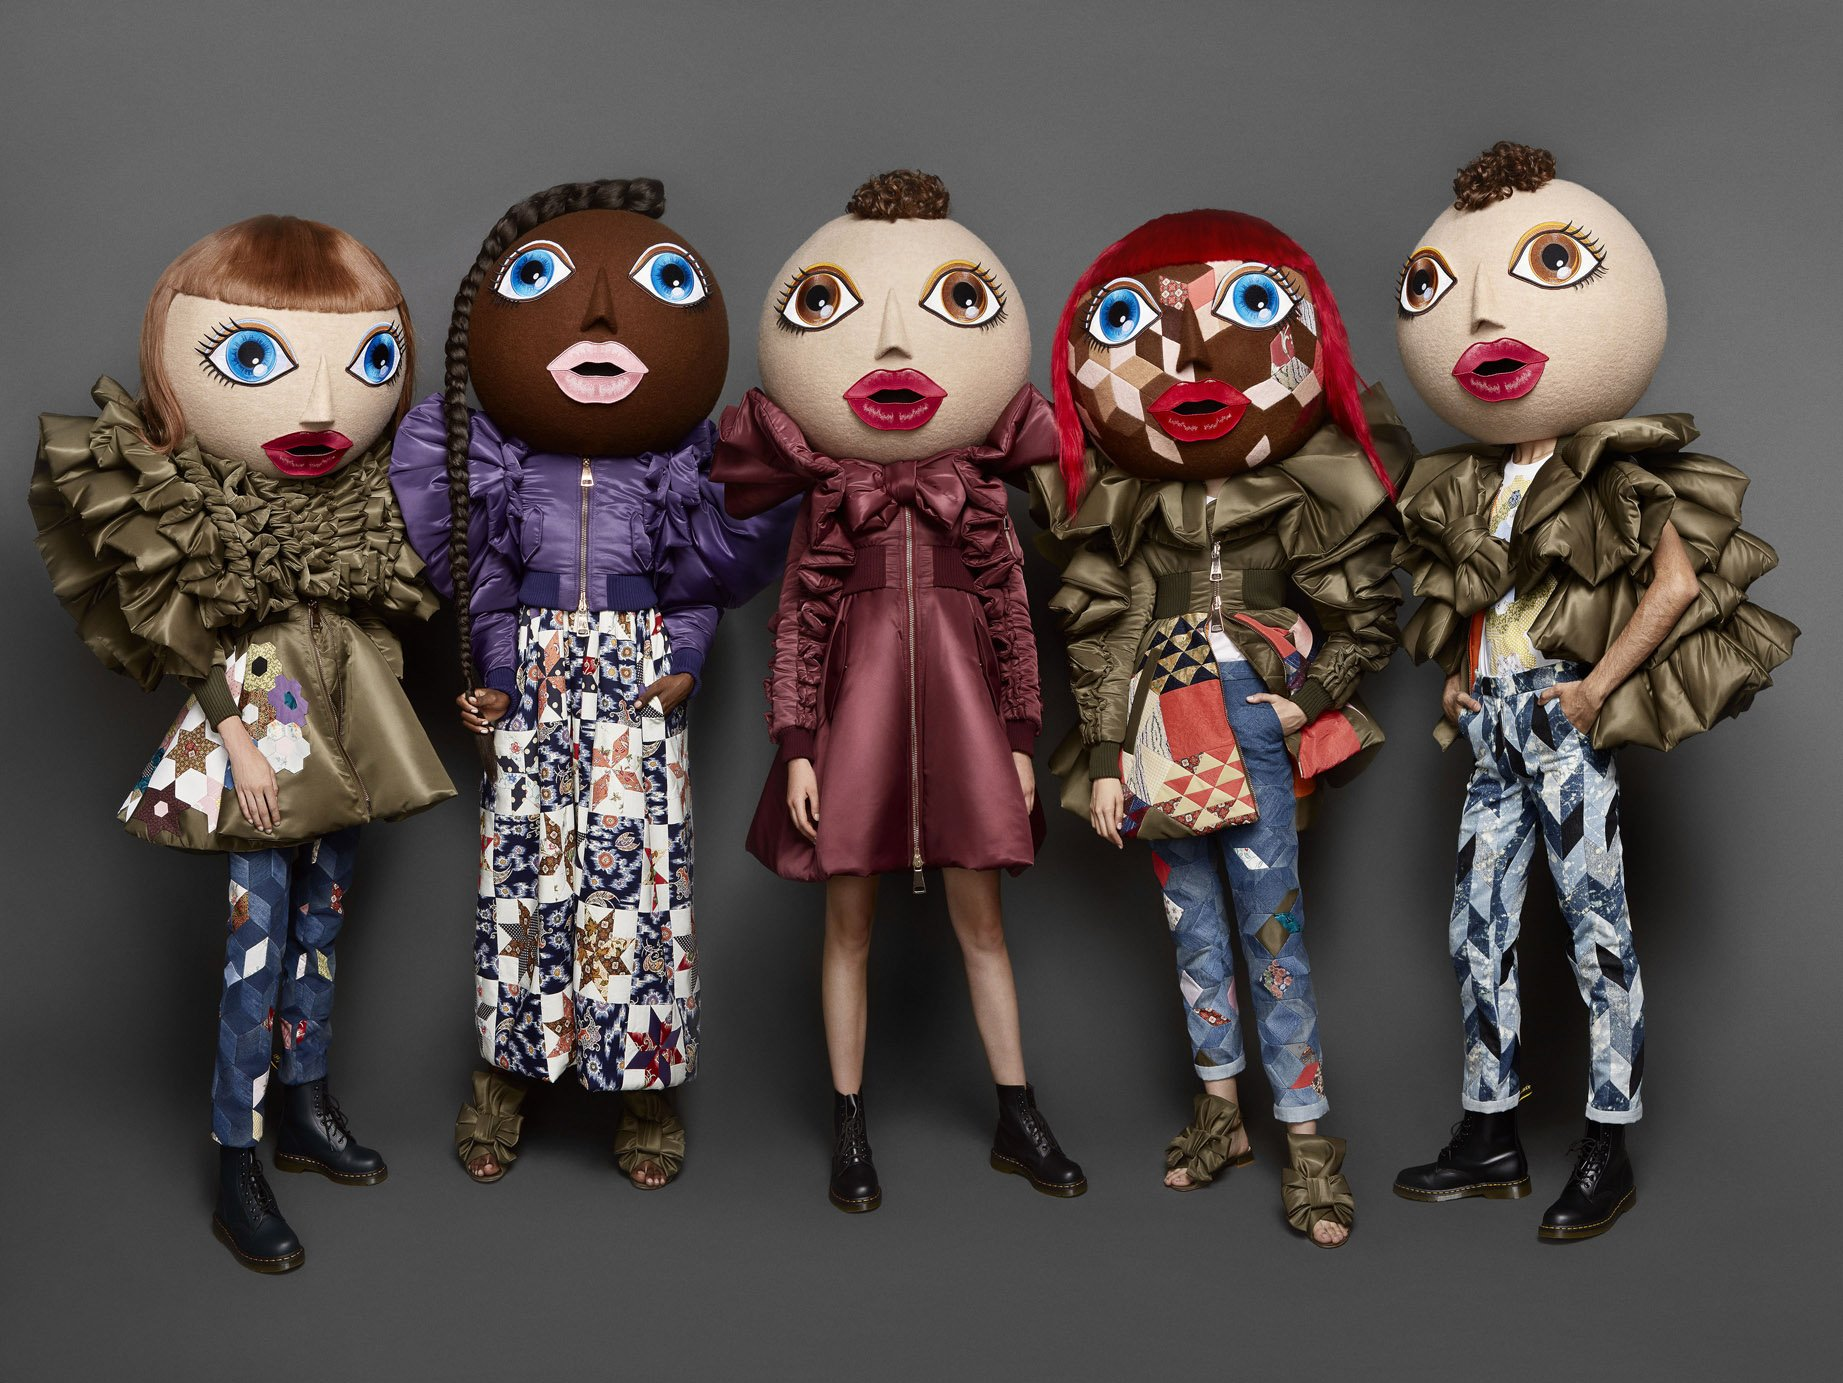 33_Viktor&Rolf_Action_Dolls_by_Marijke_Aerden.jpg